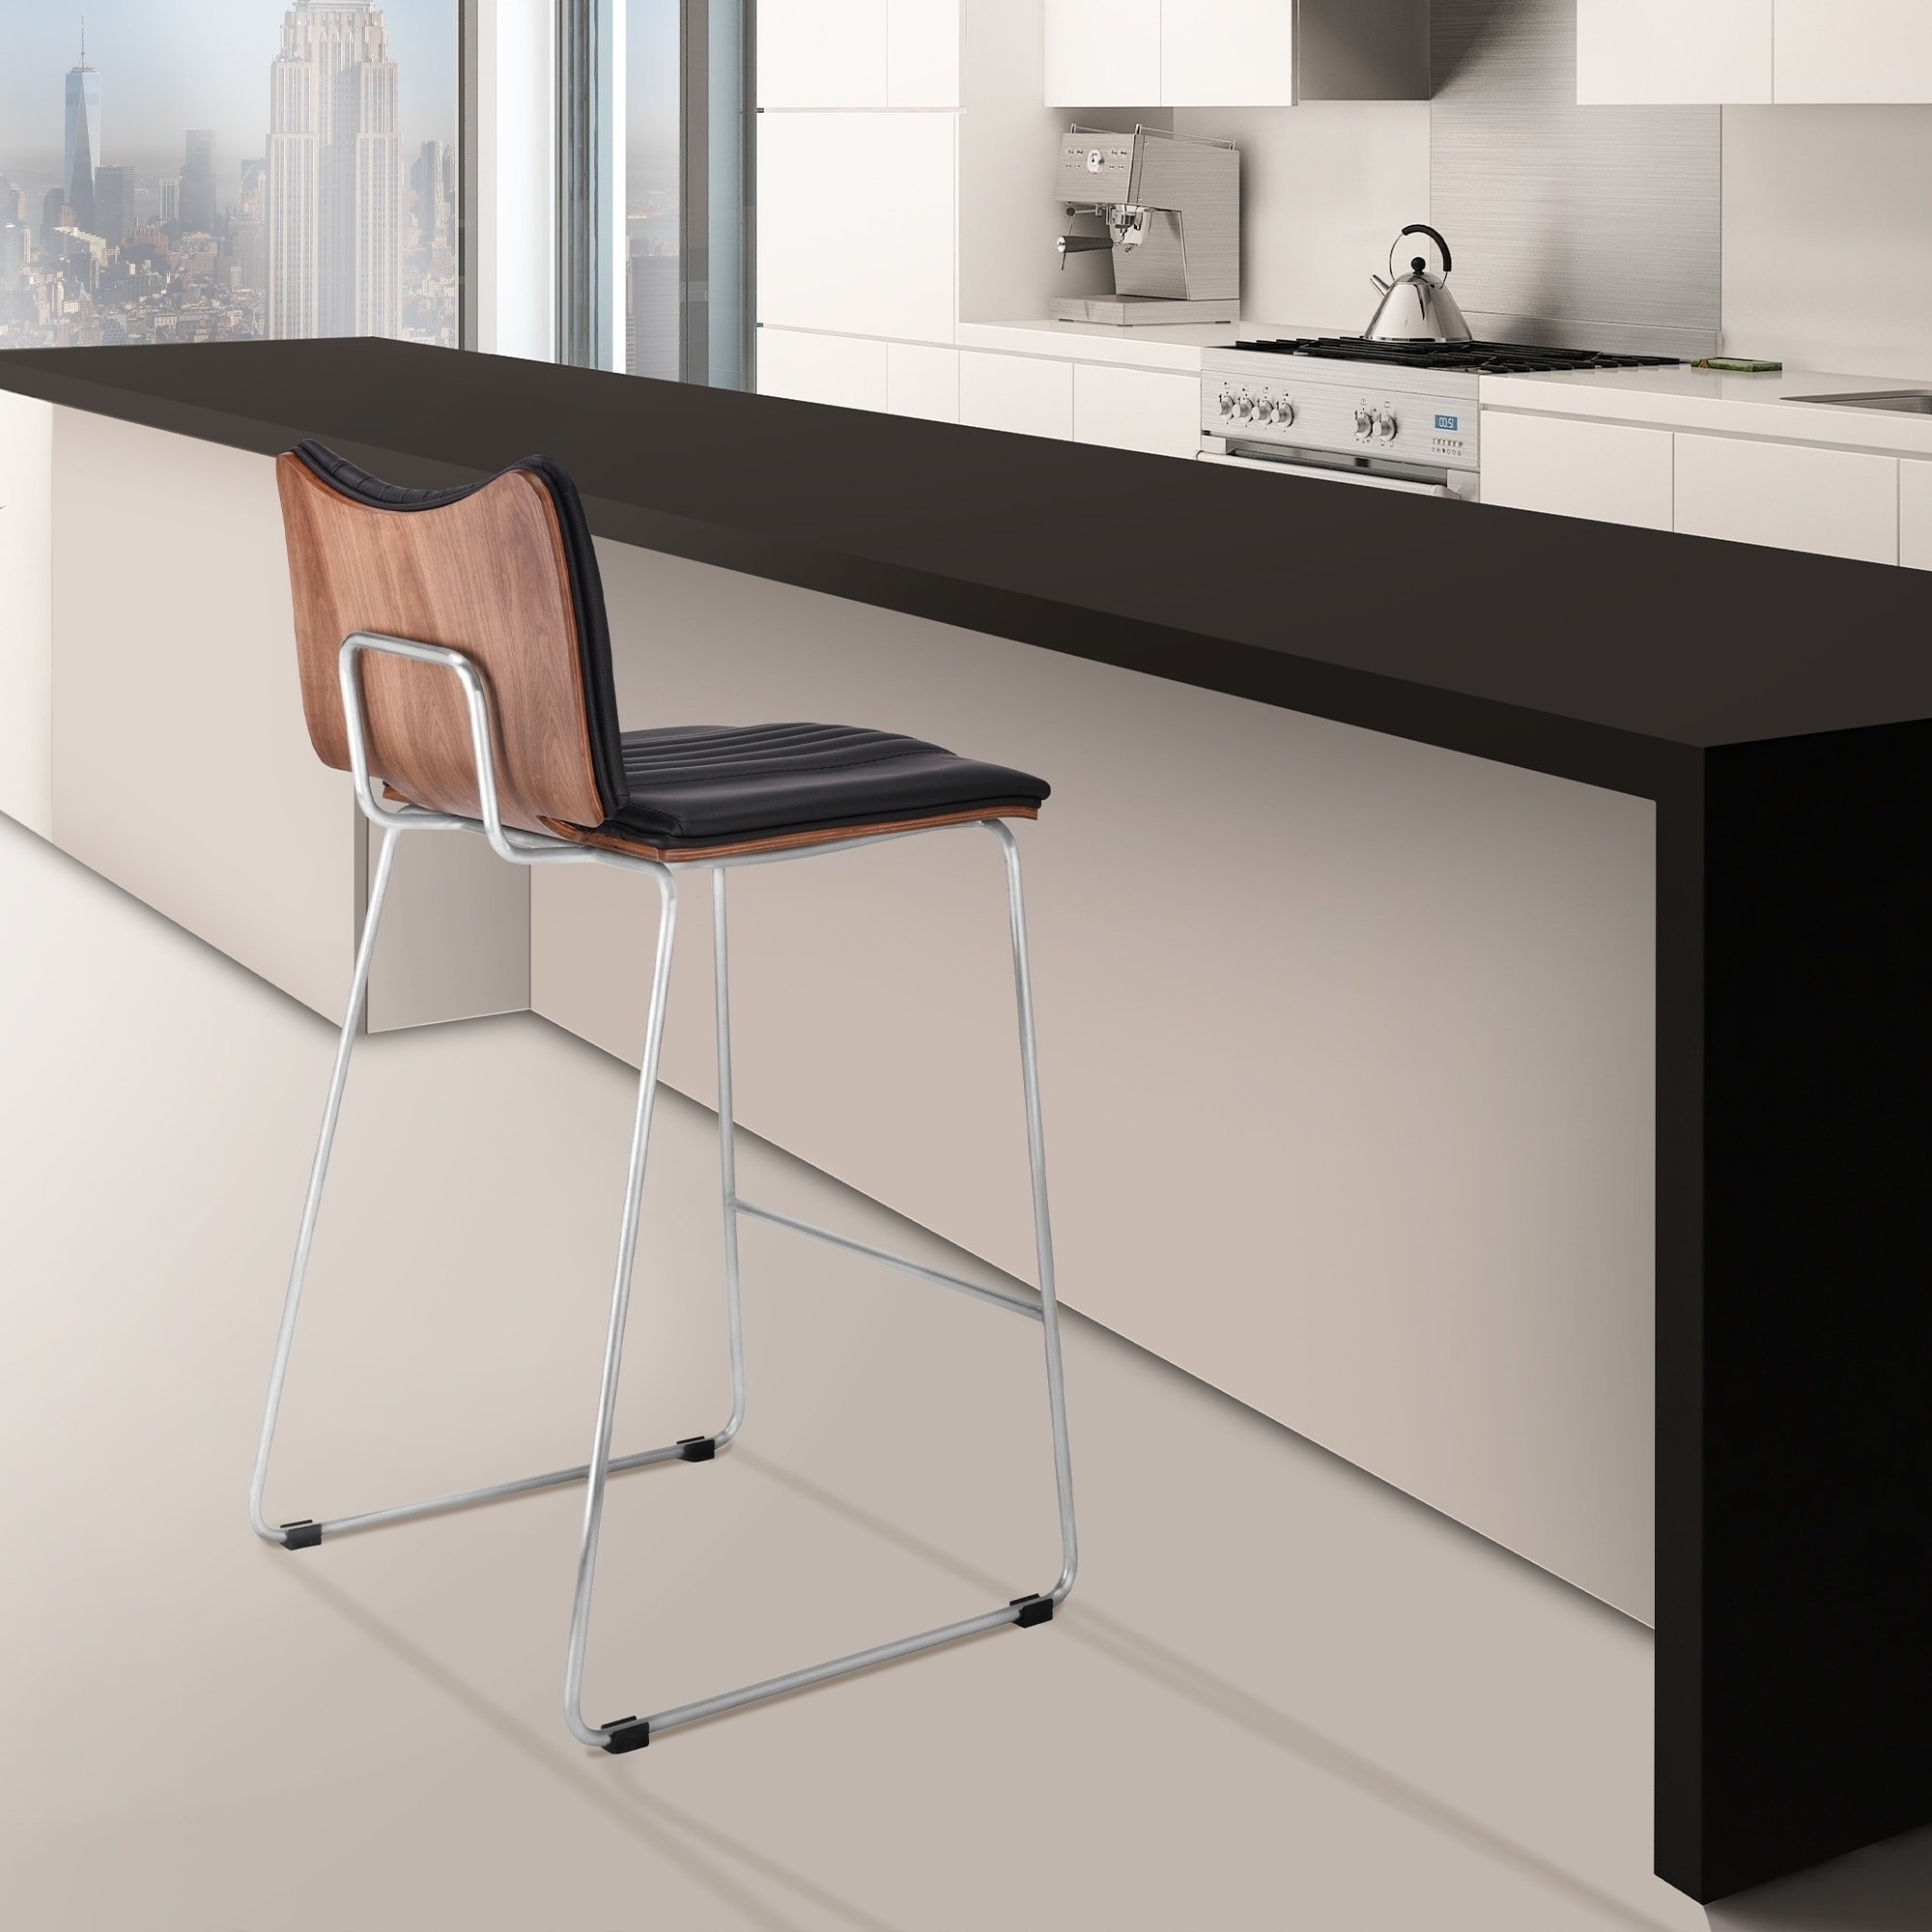 Image of: Shop Black Friday Deals On Malta Modern 26 Counter Height Bar Stool In Brushed Stainless Steel With Gray Faux Leather And Walnut Back Overstock 28124191